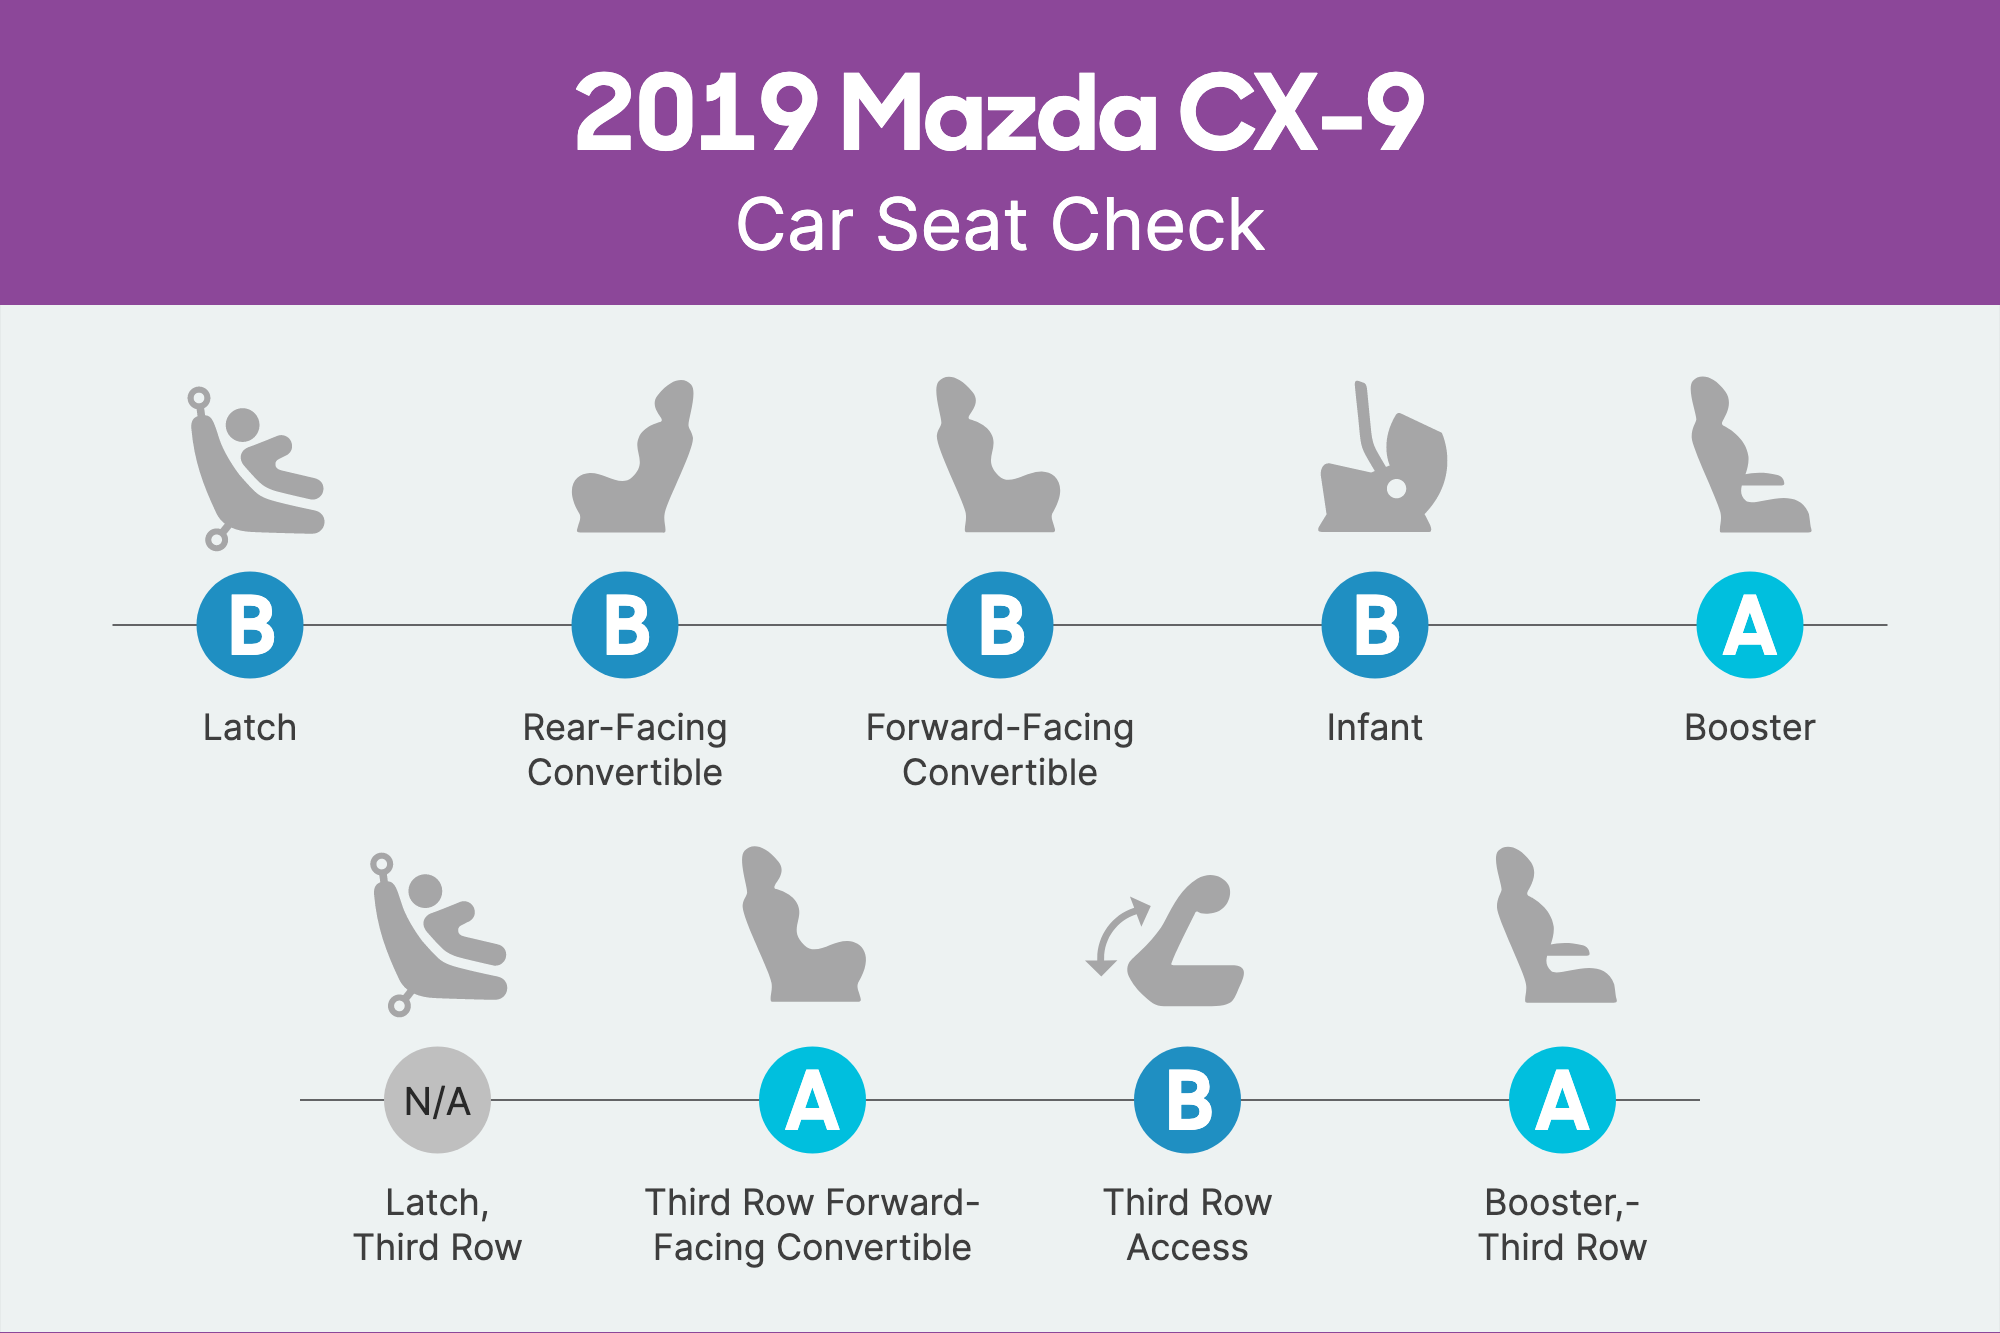 How Do Car Seats Fit in a 2019 Mazda CX-9?